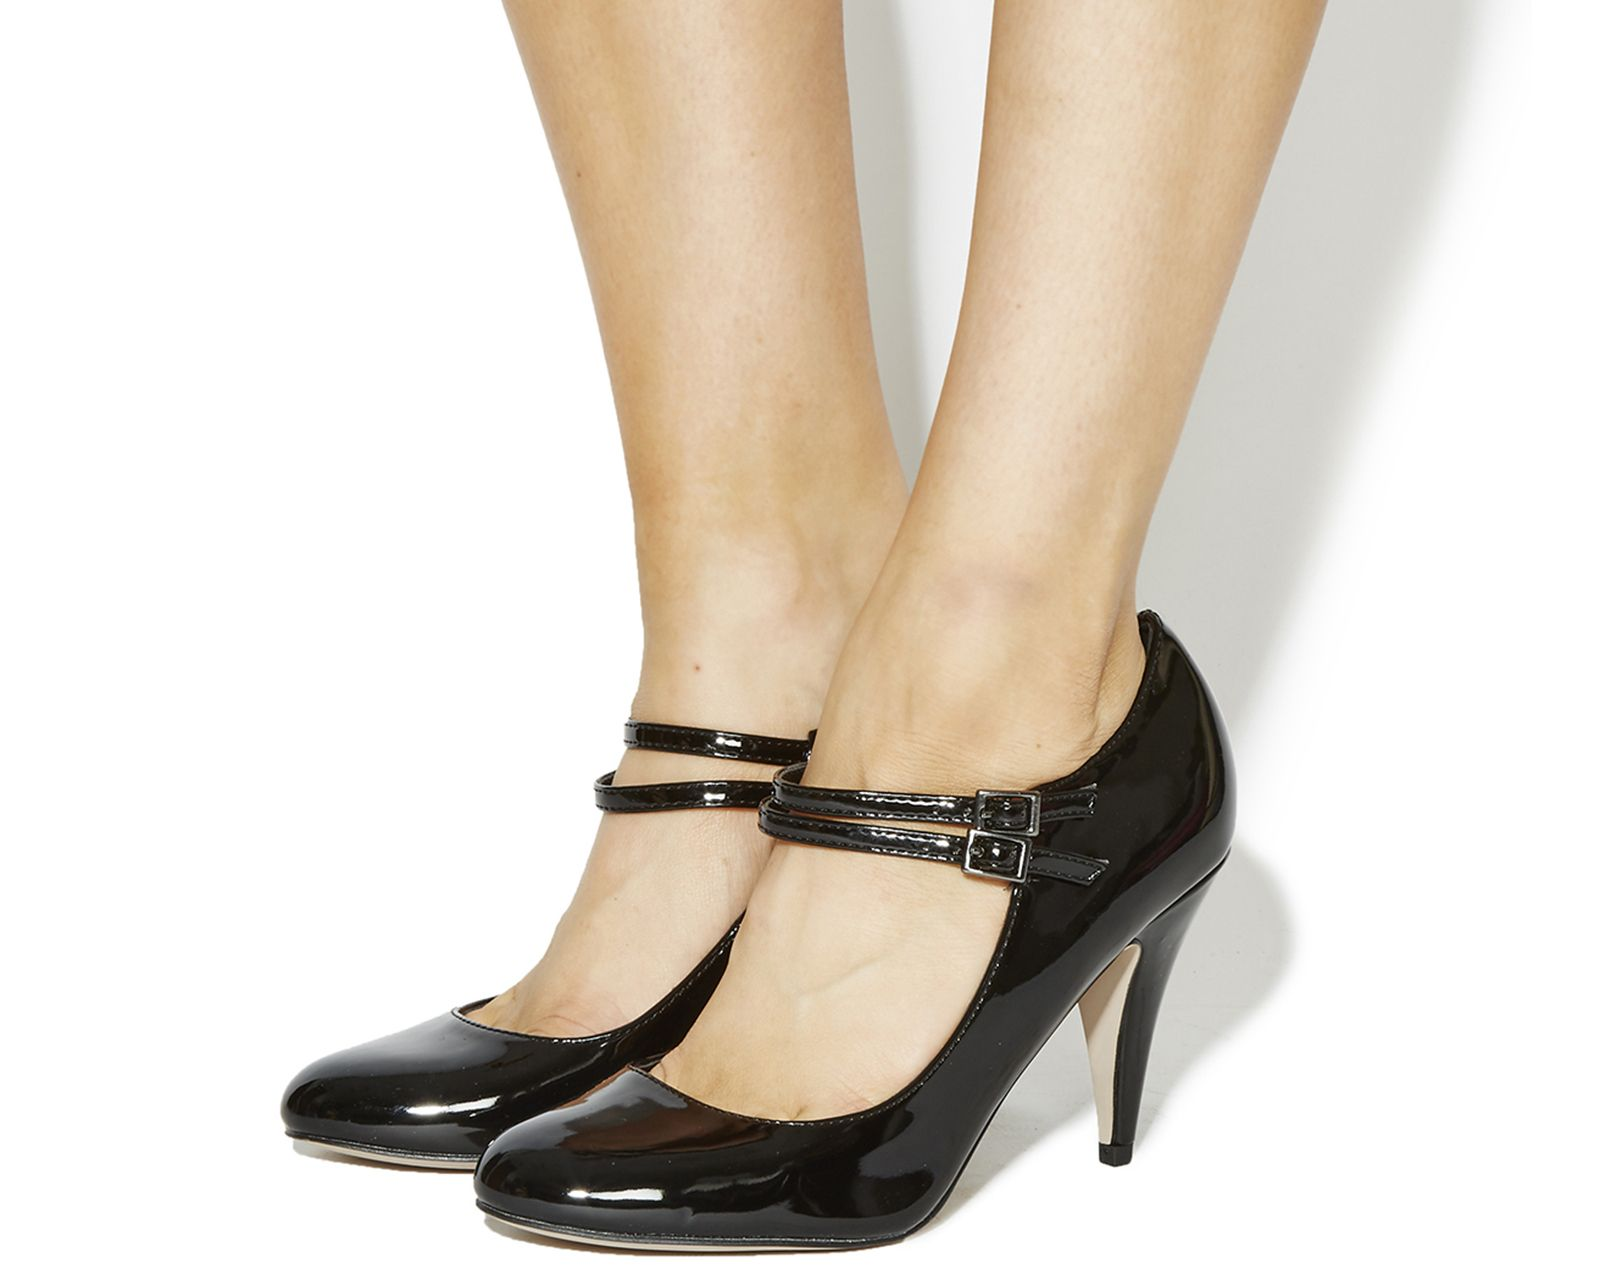 For Quizzical Double Strap Mary Janes By Office At Style